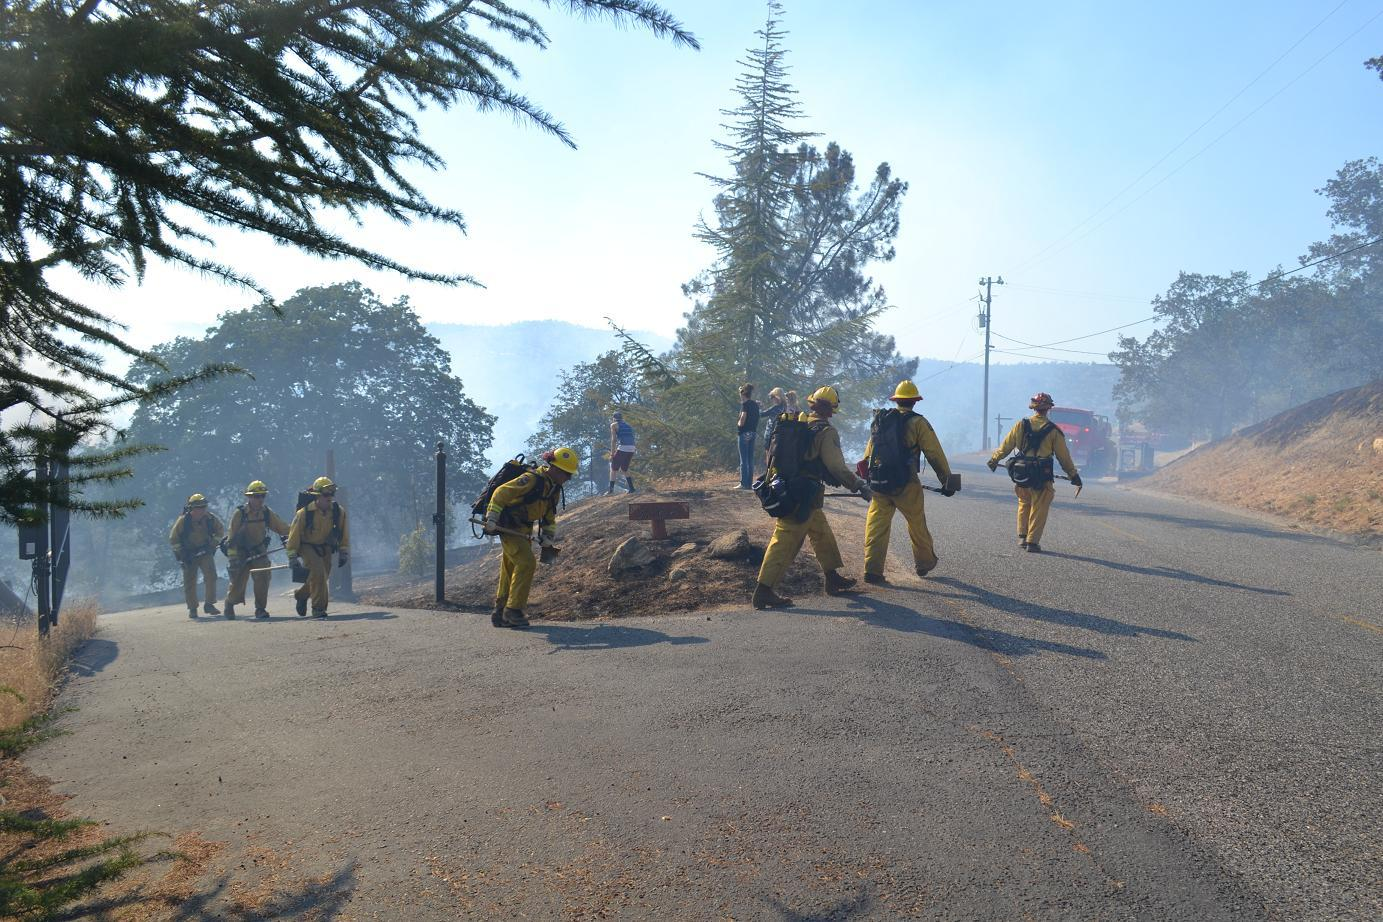 Firefighters hike up as residents watch the blaze